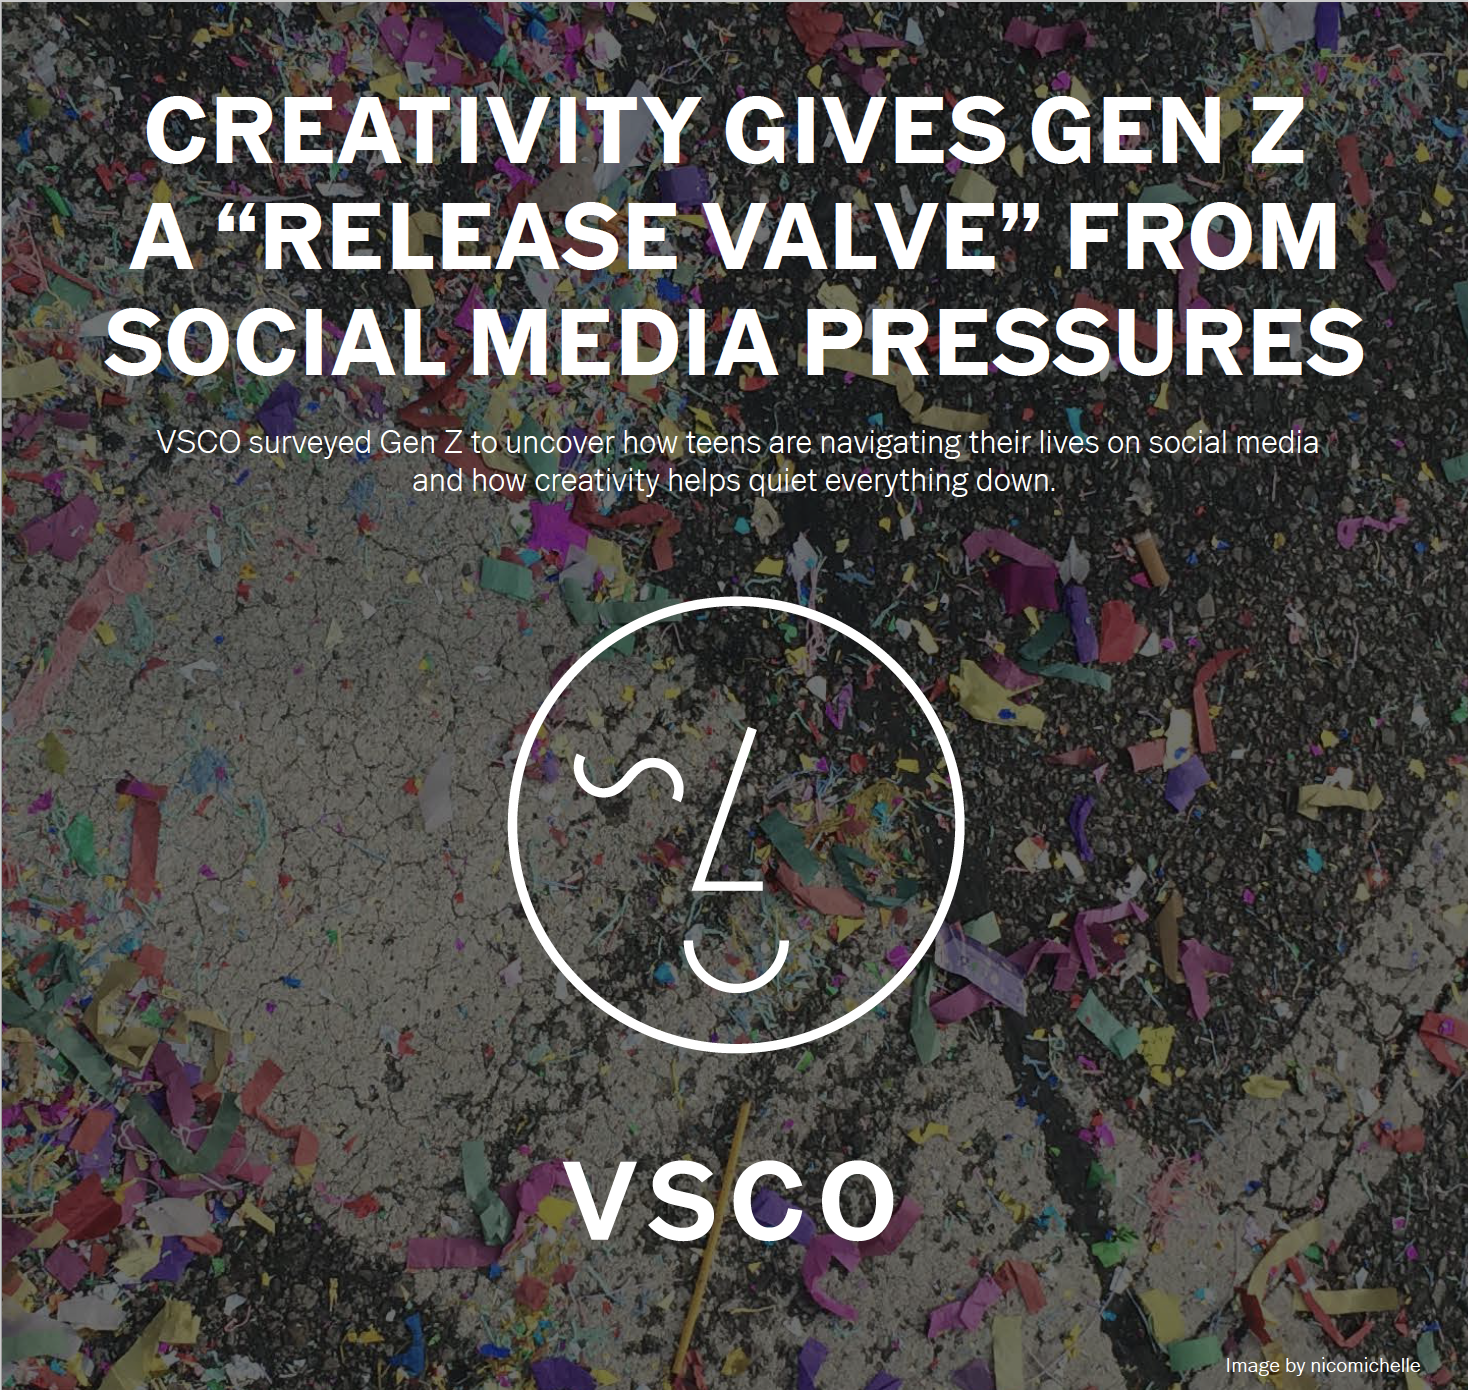 """Creativity Gives Gen Z A """"Release Valve"""" From Social Media Pressures   September 16, 2019 — As the first generation to be born with a digital footprint that they didn't create themselves, Gen Z are in many ways better prepared than any other generation to manage their way through social media. They're re-writing the rules as they go, finding safe spaces for creative expression and prioritizing self-care as part of their digital routine."""